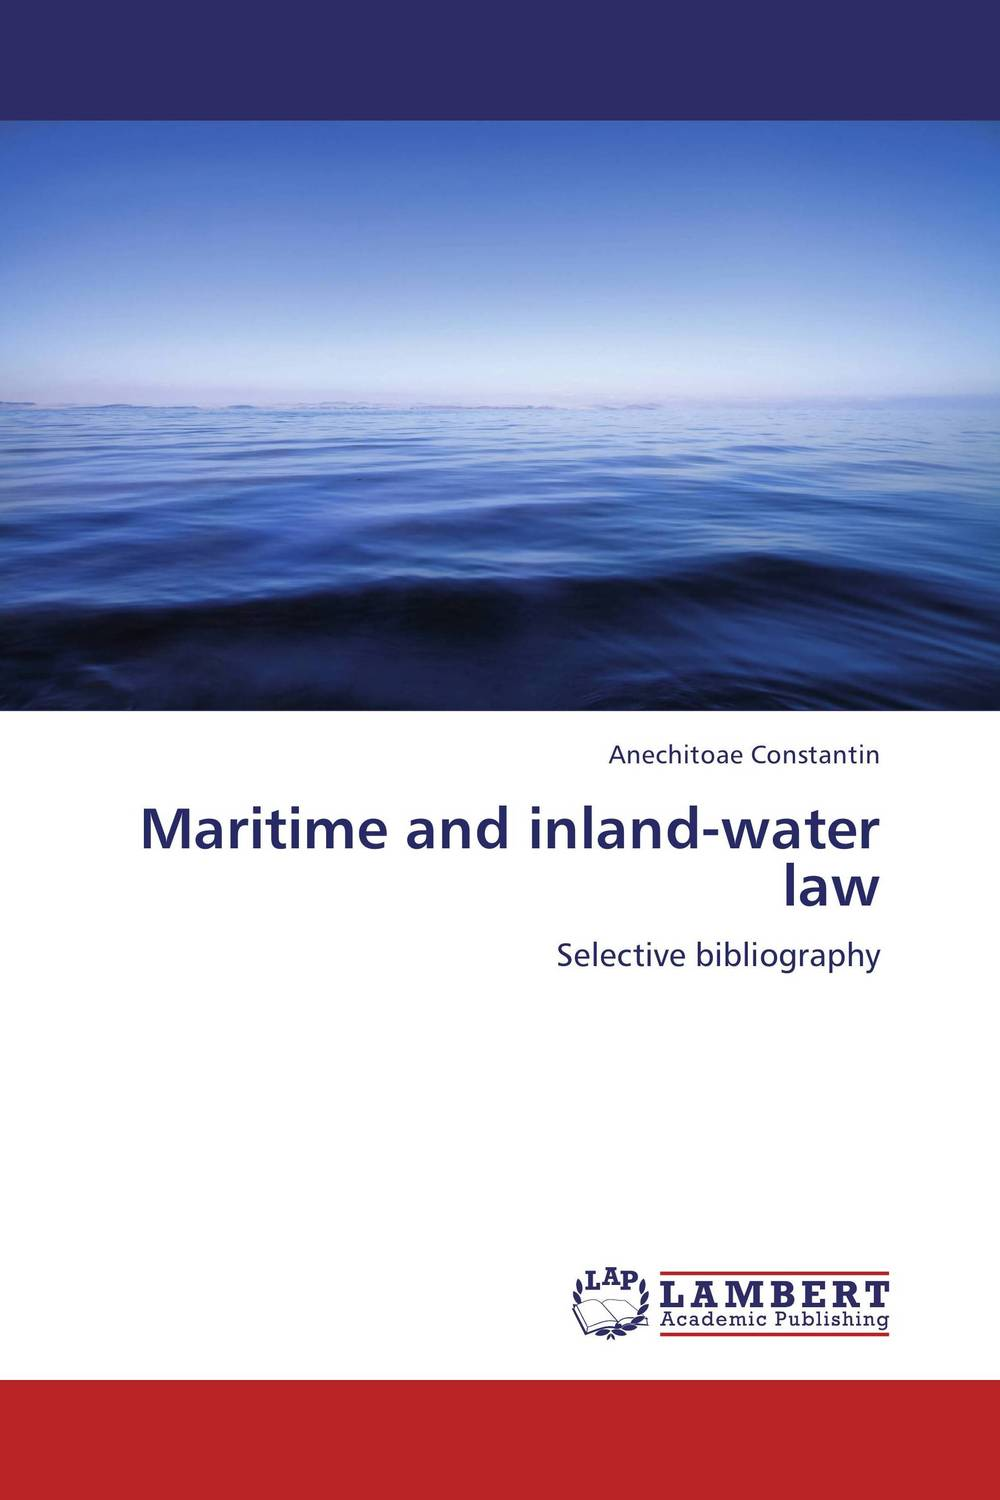 Maritime and inland-water law maritime safety